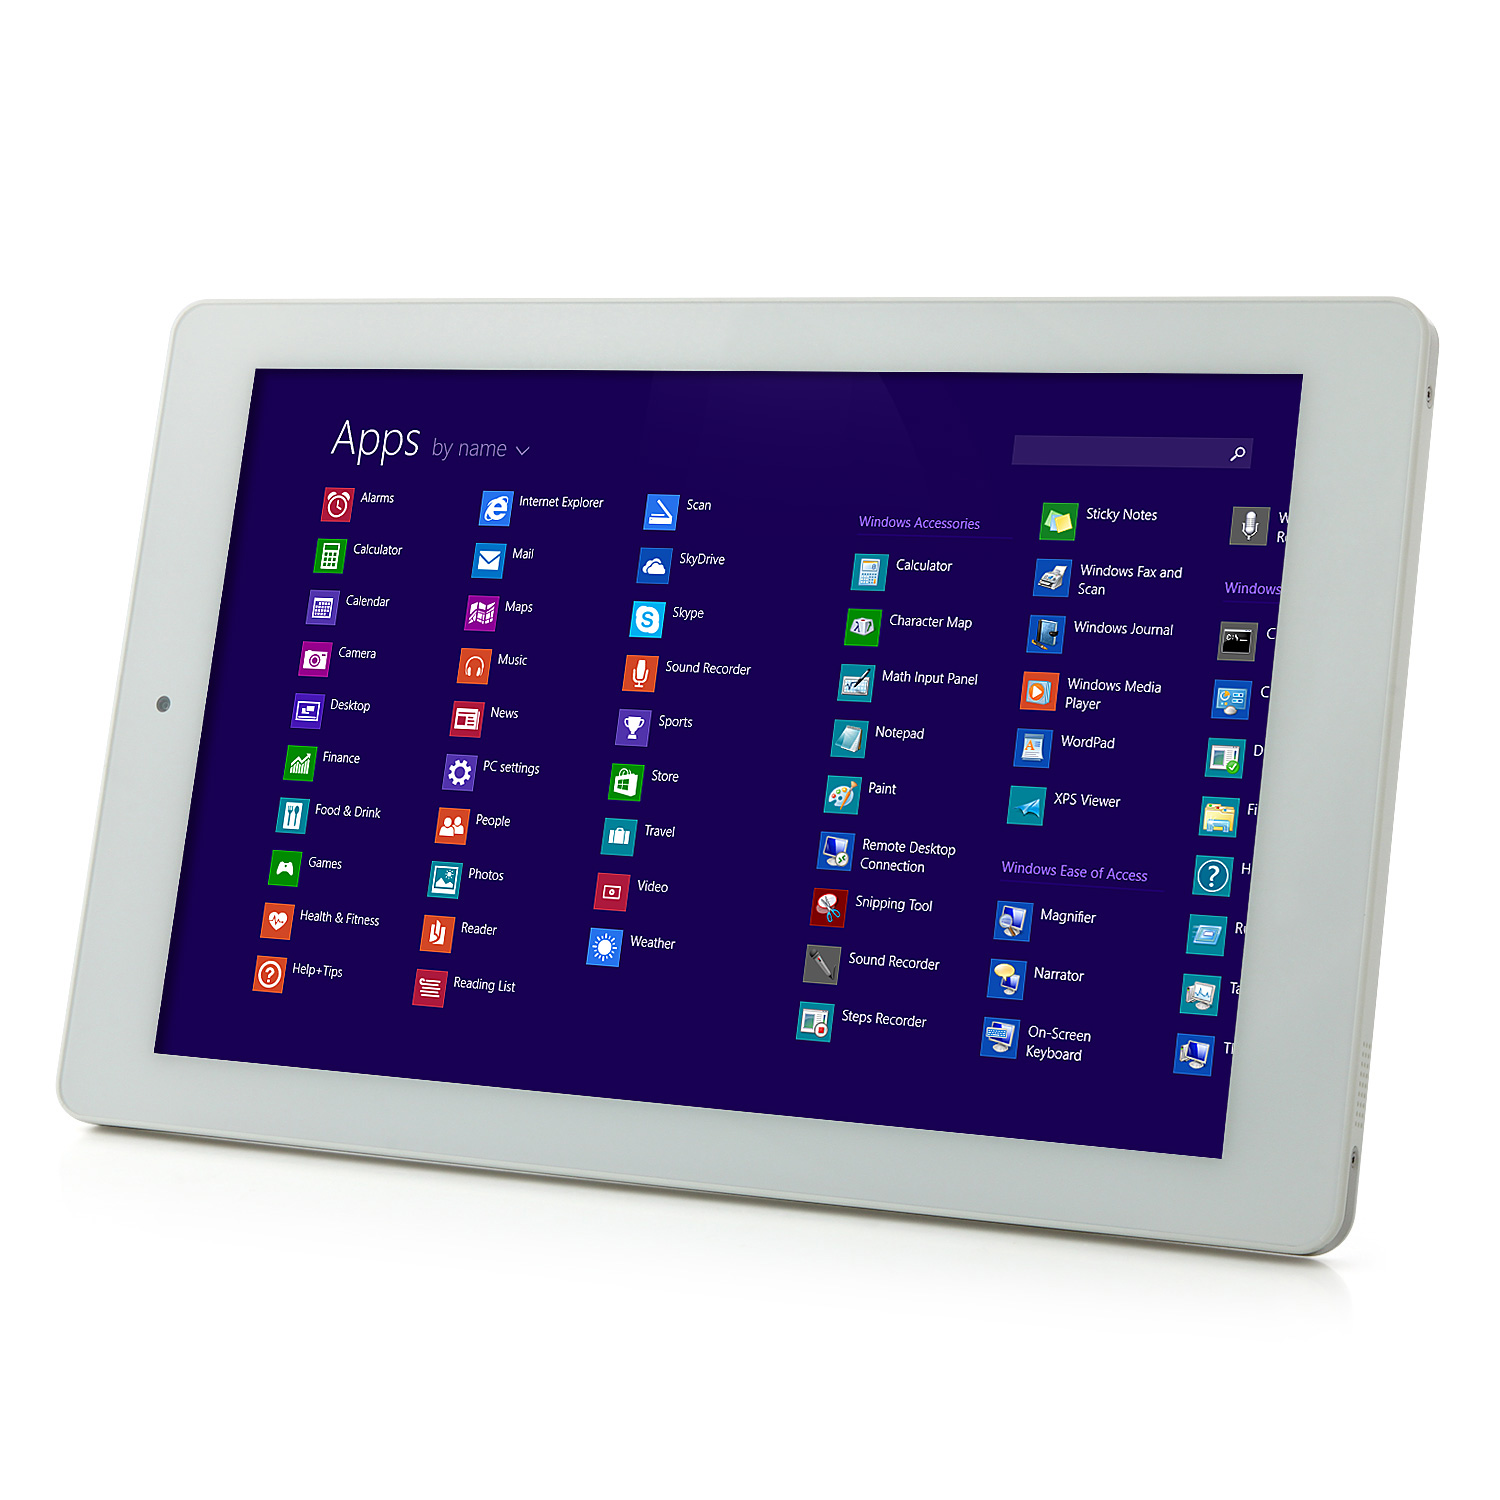 CHUWI V89 3G Tablet PC Intel Z3735F Quad Core 8.9 Inch Windows 8.1 FHD OGS 64GB White